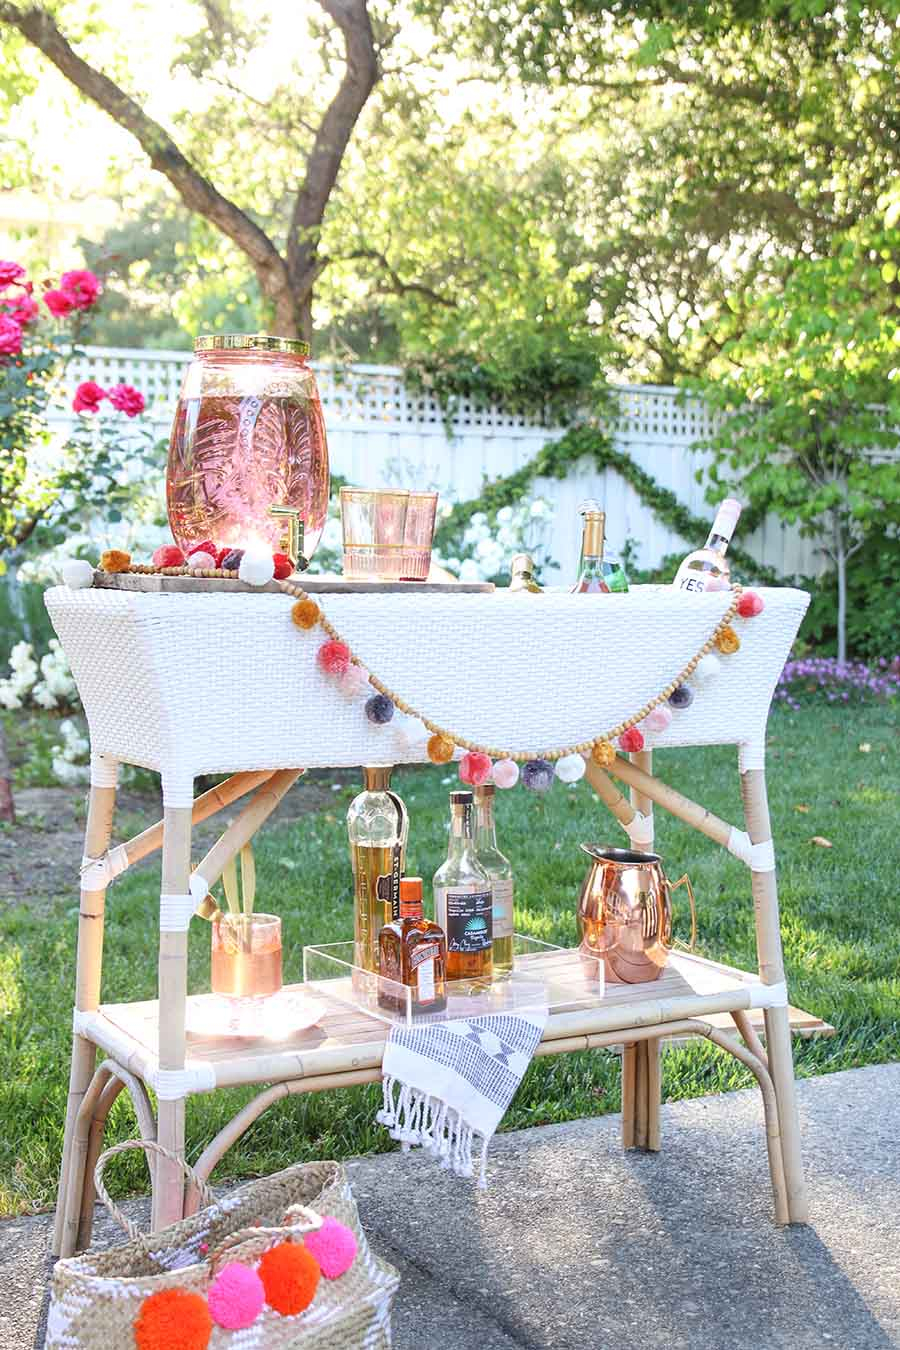 Patio Decorating Ideas 7 Simple Summer Updates Modern Glam with 16 Smart Designs of How to Makeover Ideas To Decorate Backyard